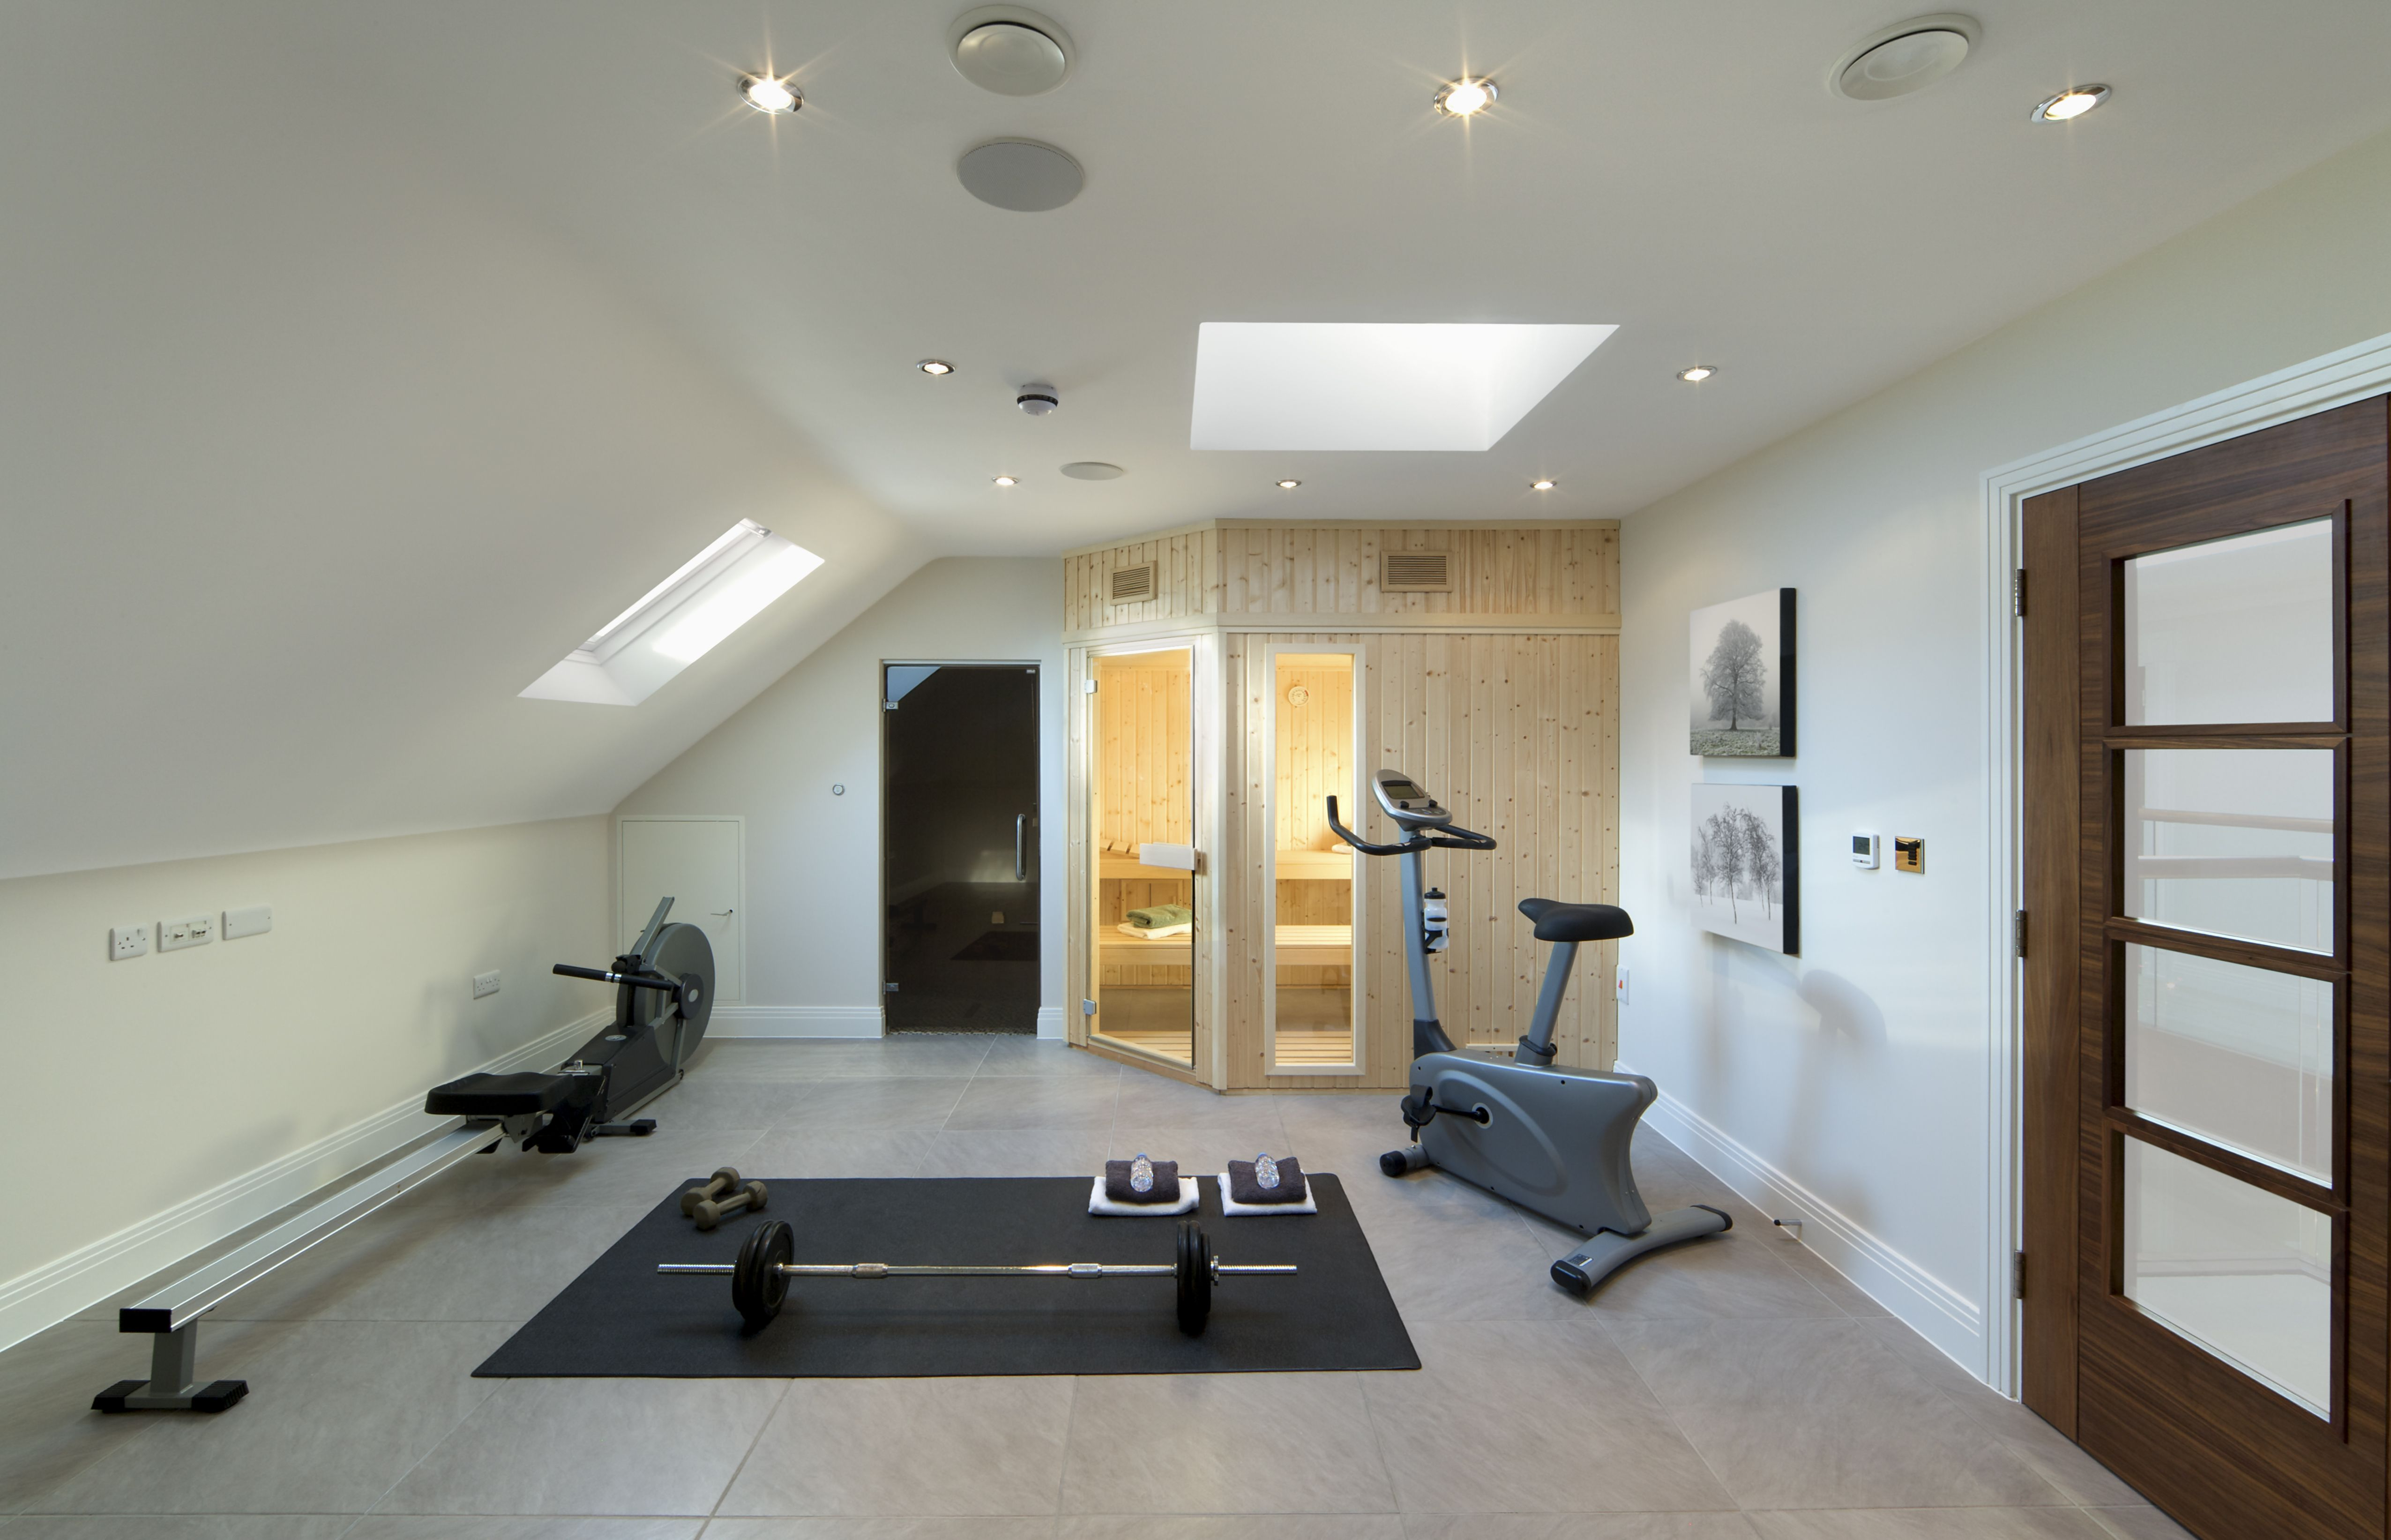 The Best Flooring Options For Your Home Gym